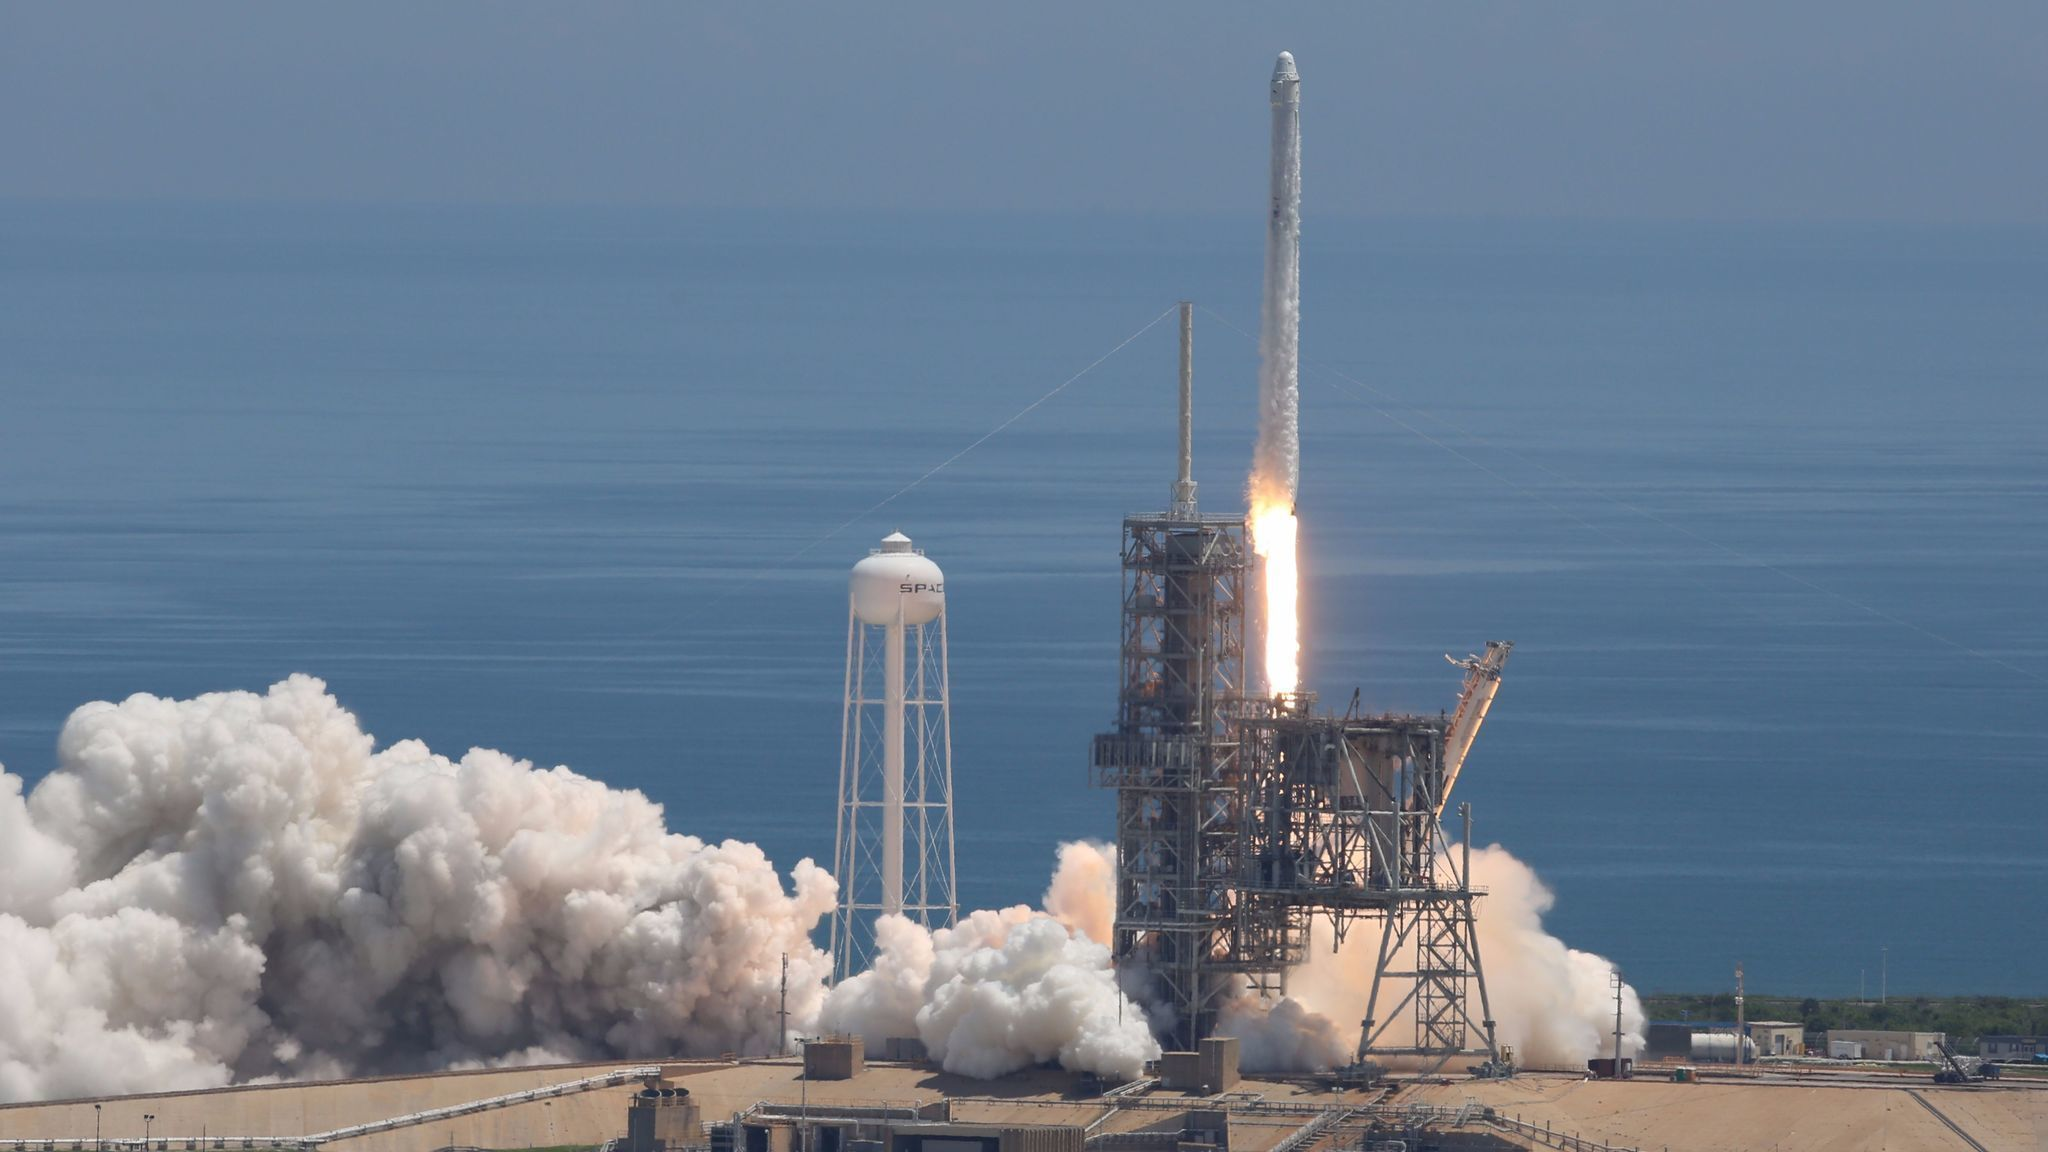 spacex launches iss resupply mission lands rocket at cape canaveral orlando sentinel